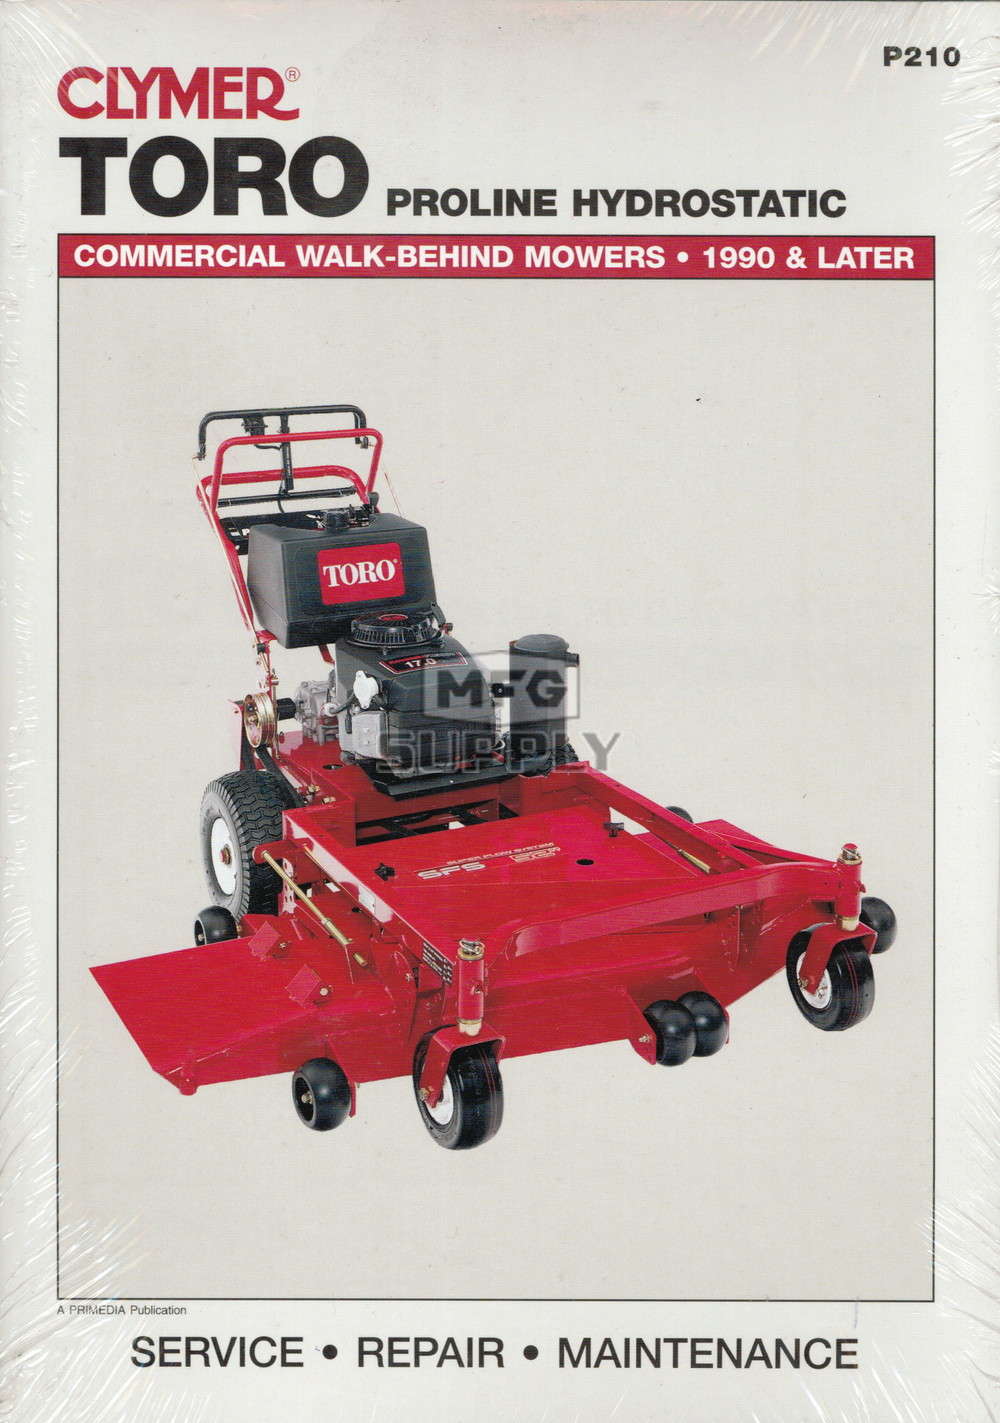 toro commercial walk behind mowers service manual 1990 later rh mfgsupply com toro recycler lawn mower owner's manual toro lawn mower service manual